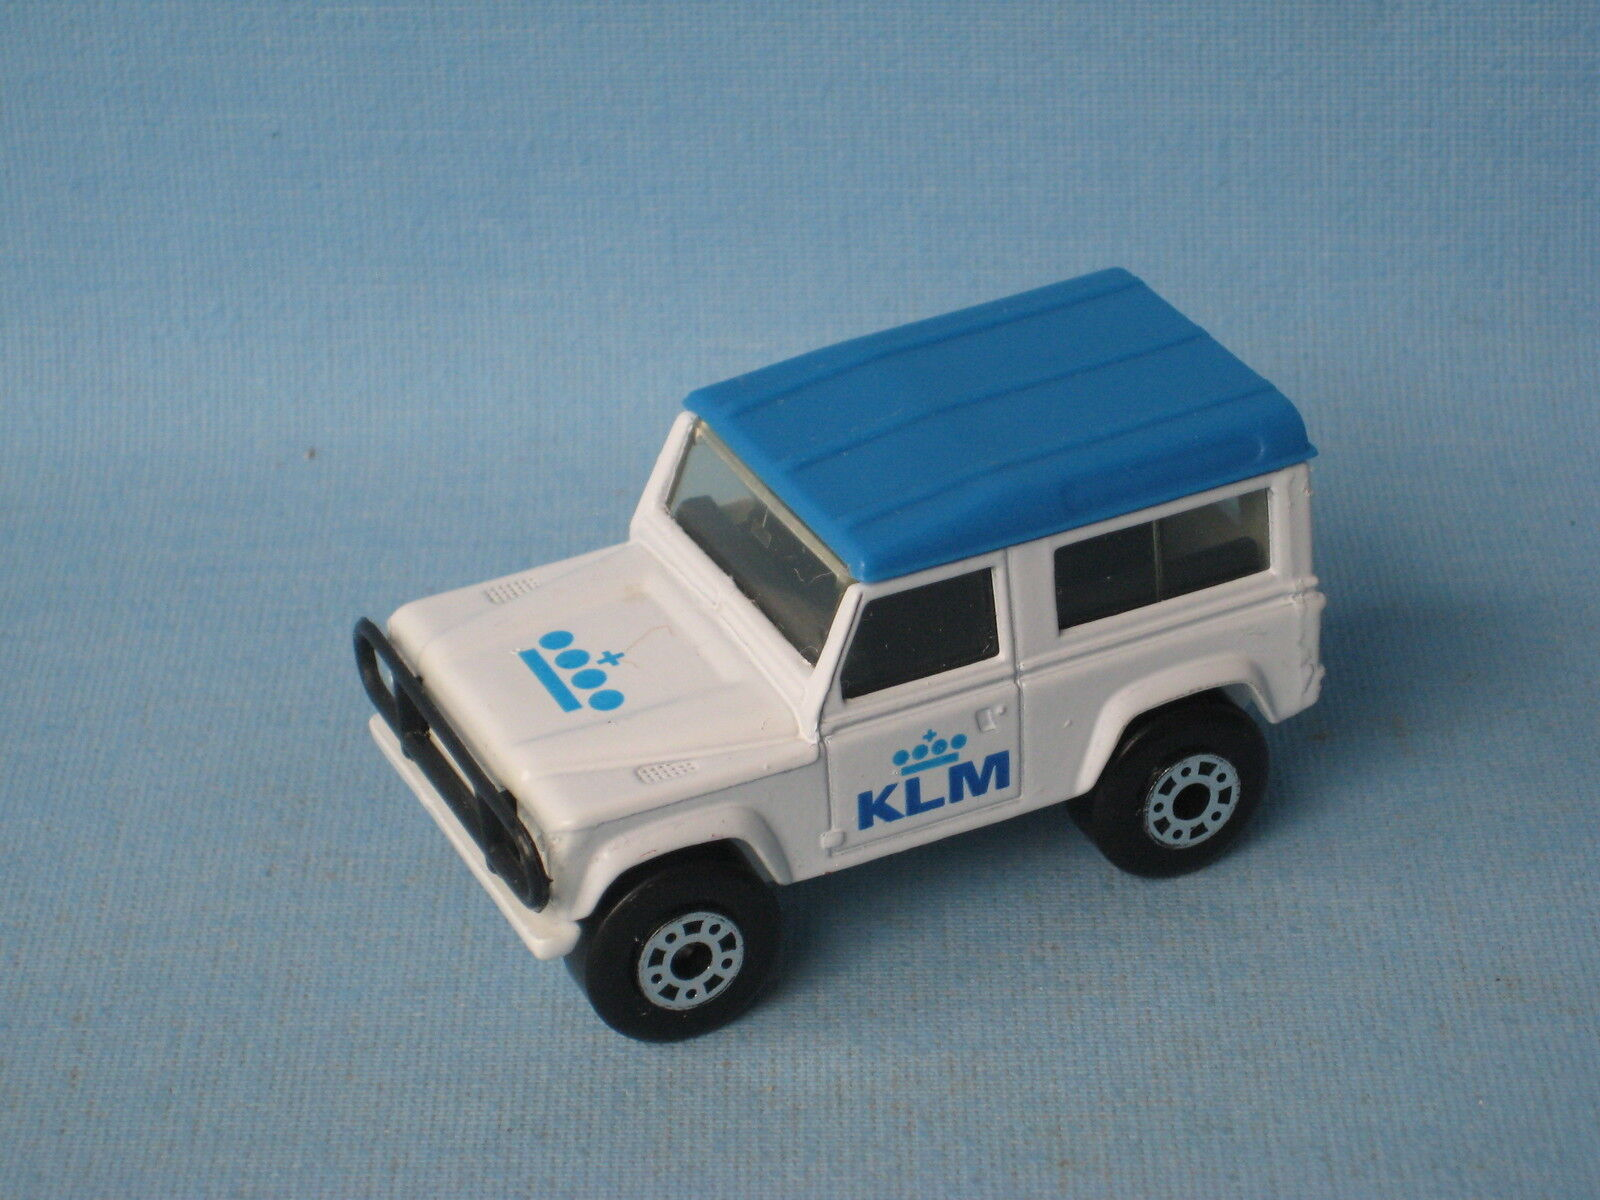 Matchbox Land Rover 90 defensor defensor defensor KLM Airlines 60mm Sin Caja Raro 642102